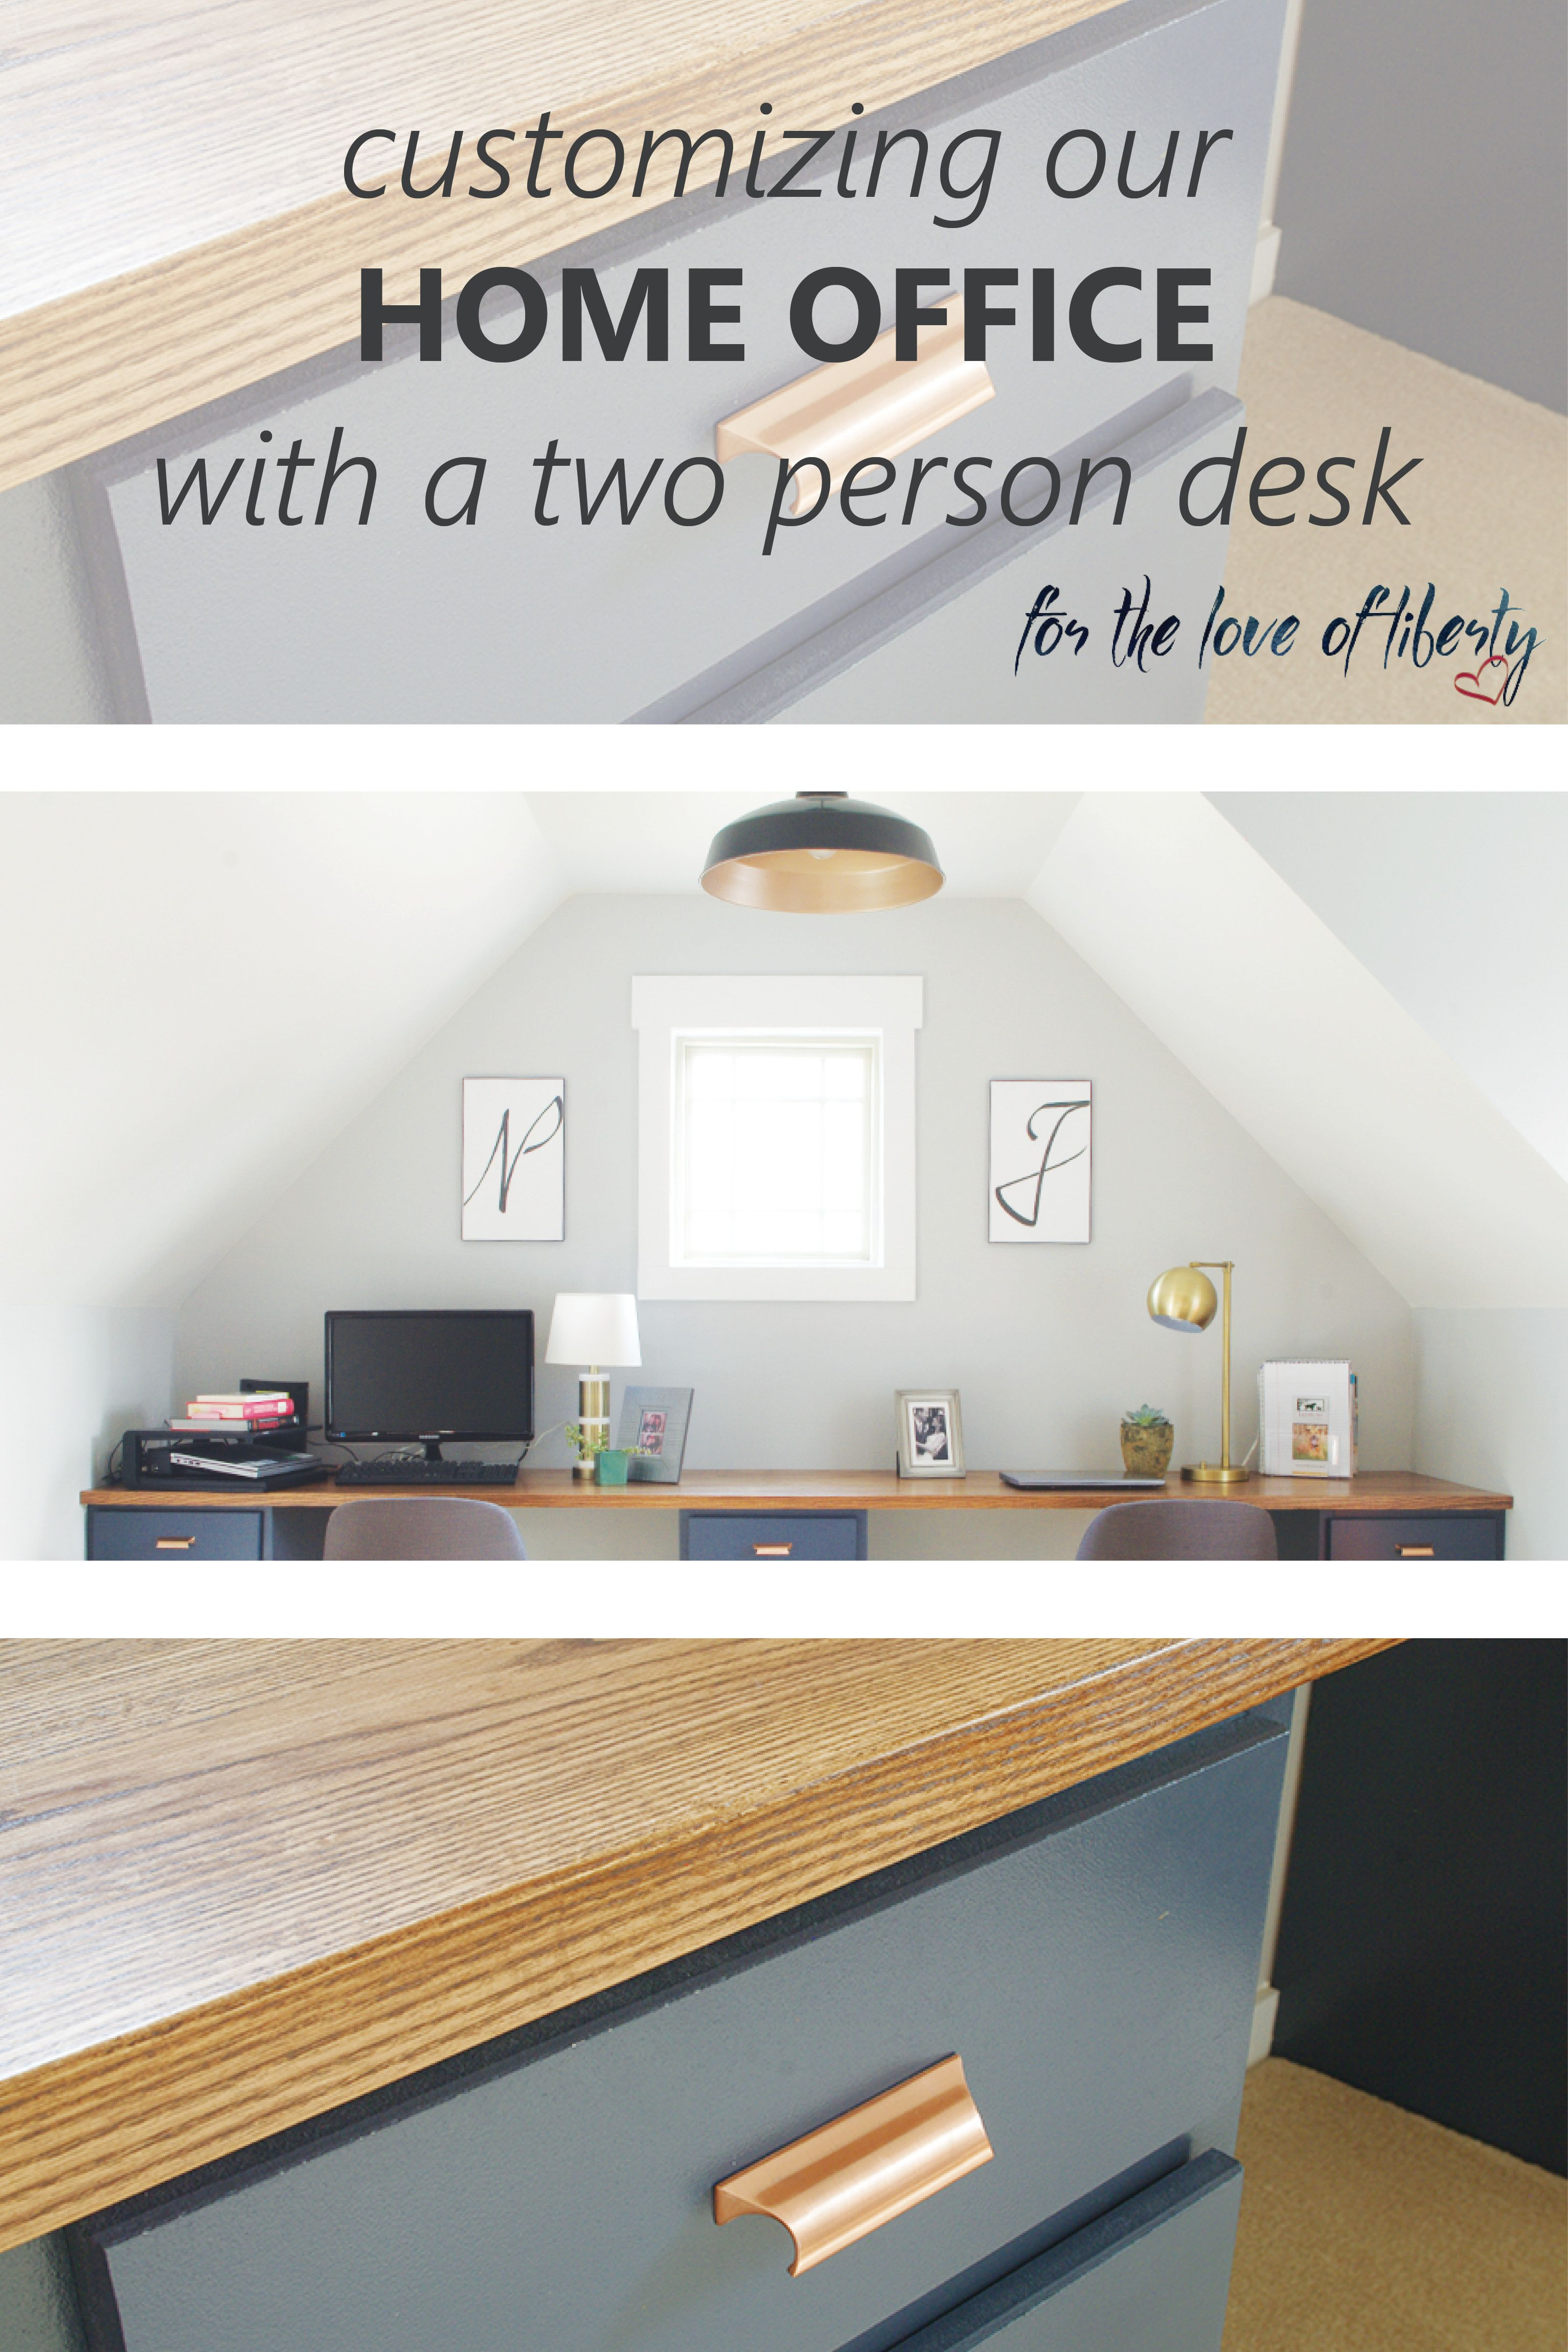 Customizing Our Office Space | Office works, Desks and Spaces